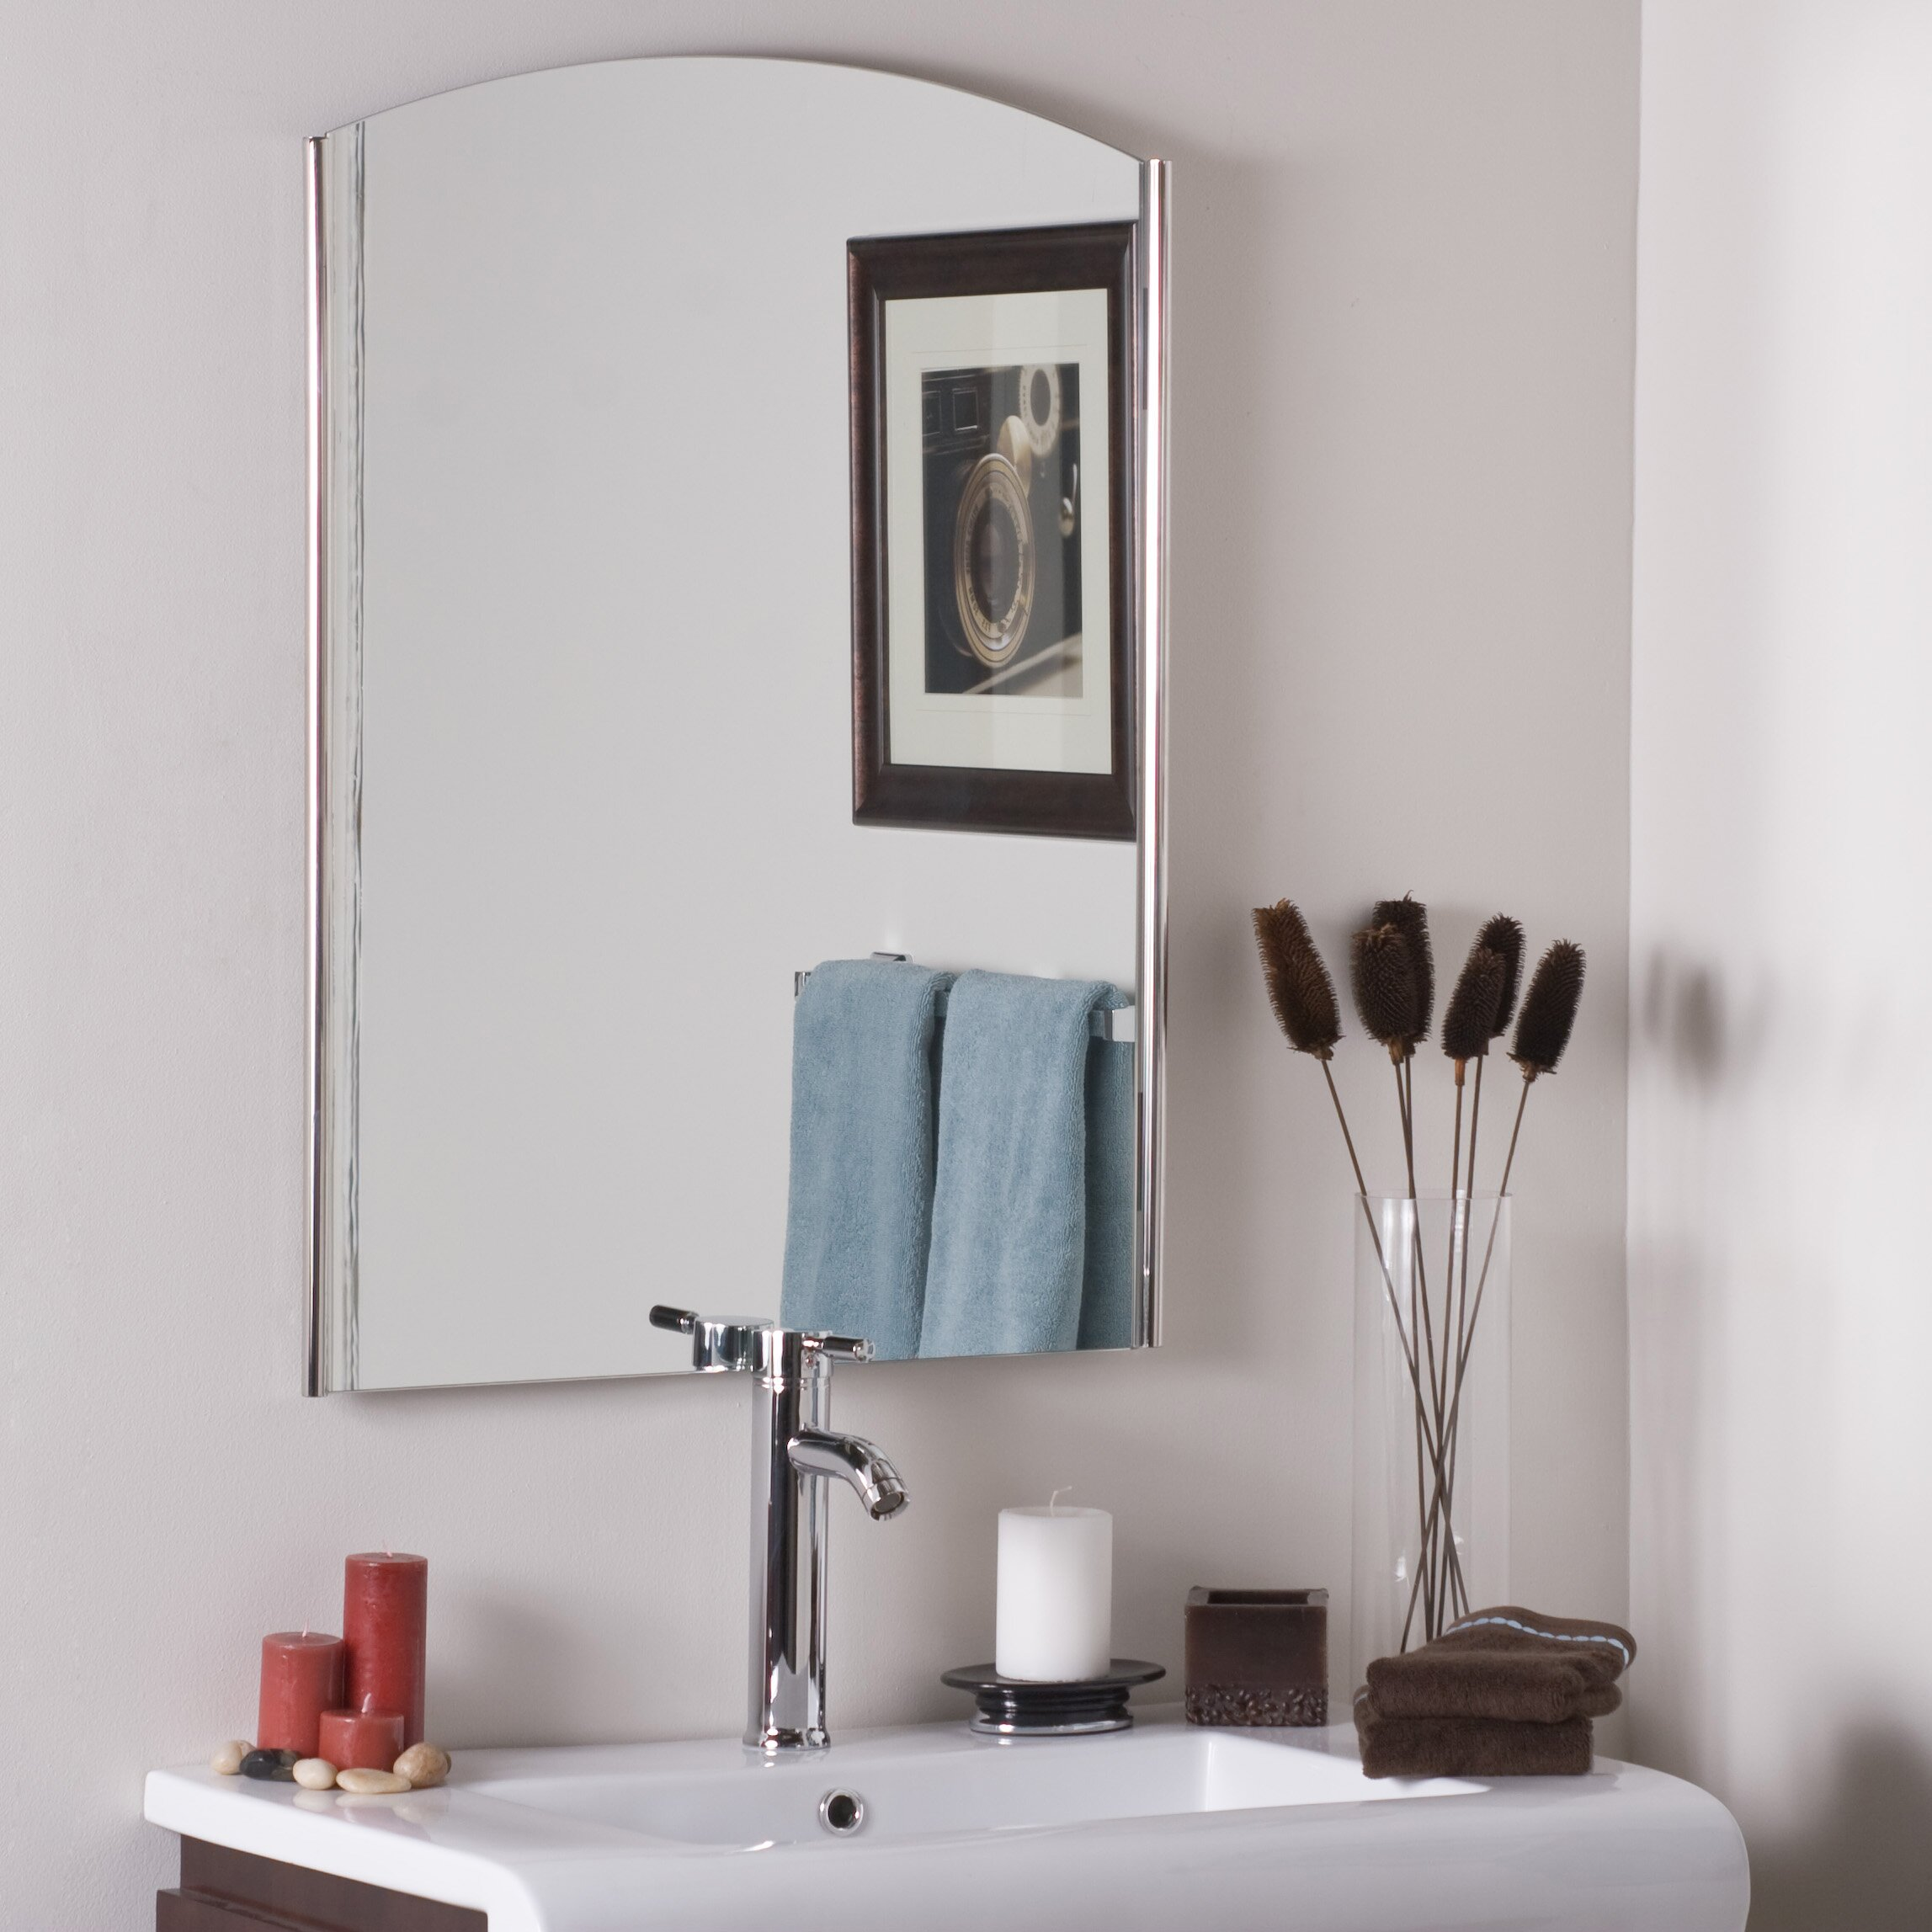 Decor wonderland frameless ella wall mirror reviews for Frameless wall mirror